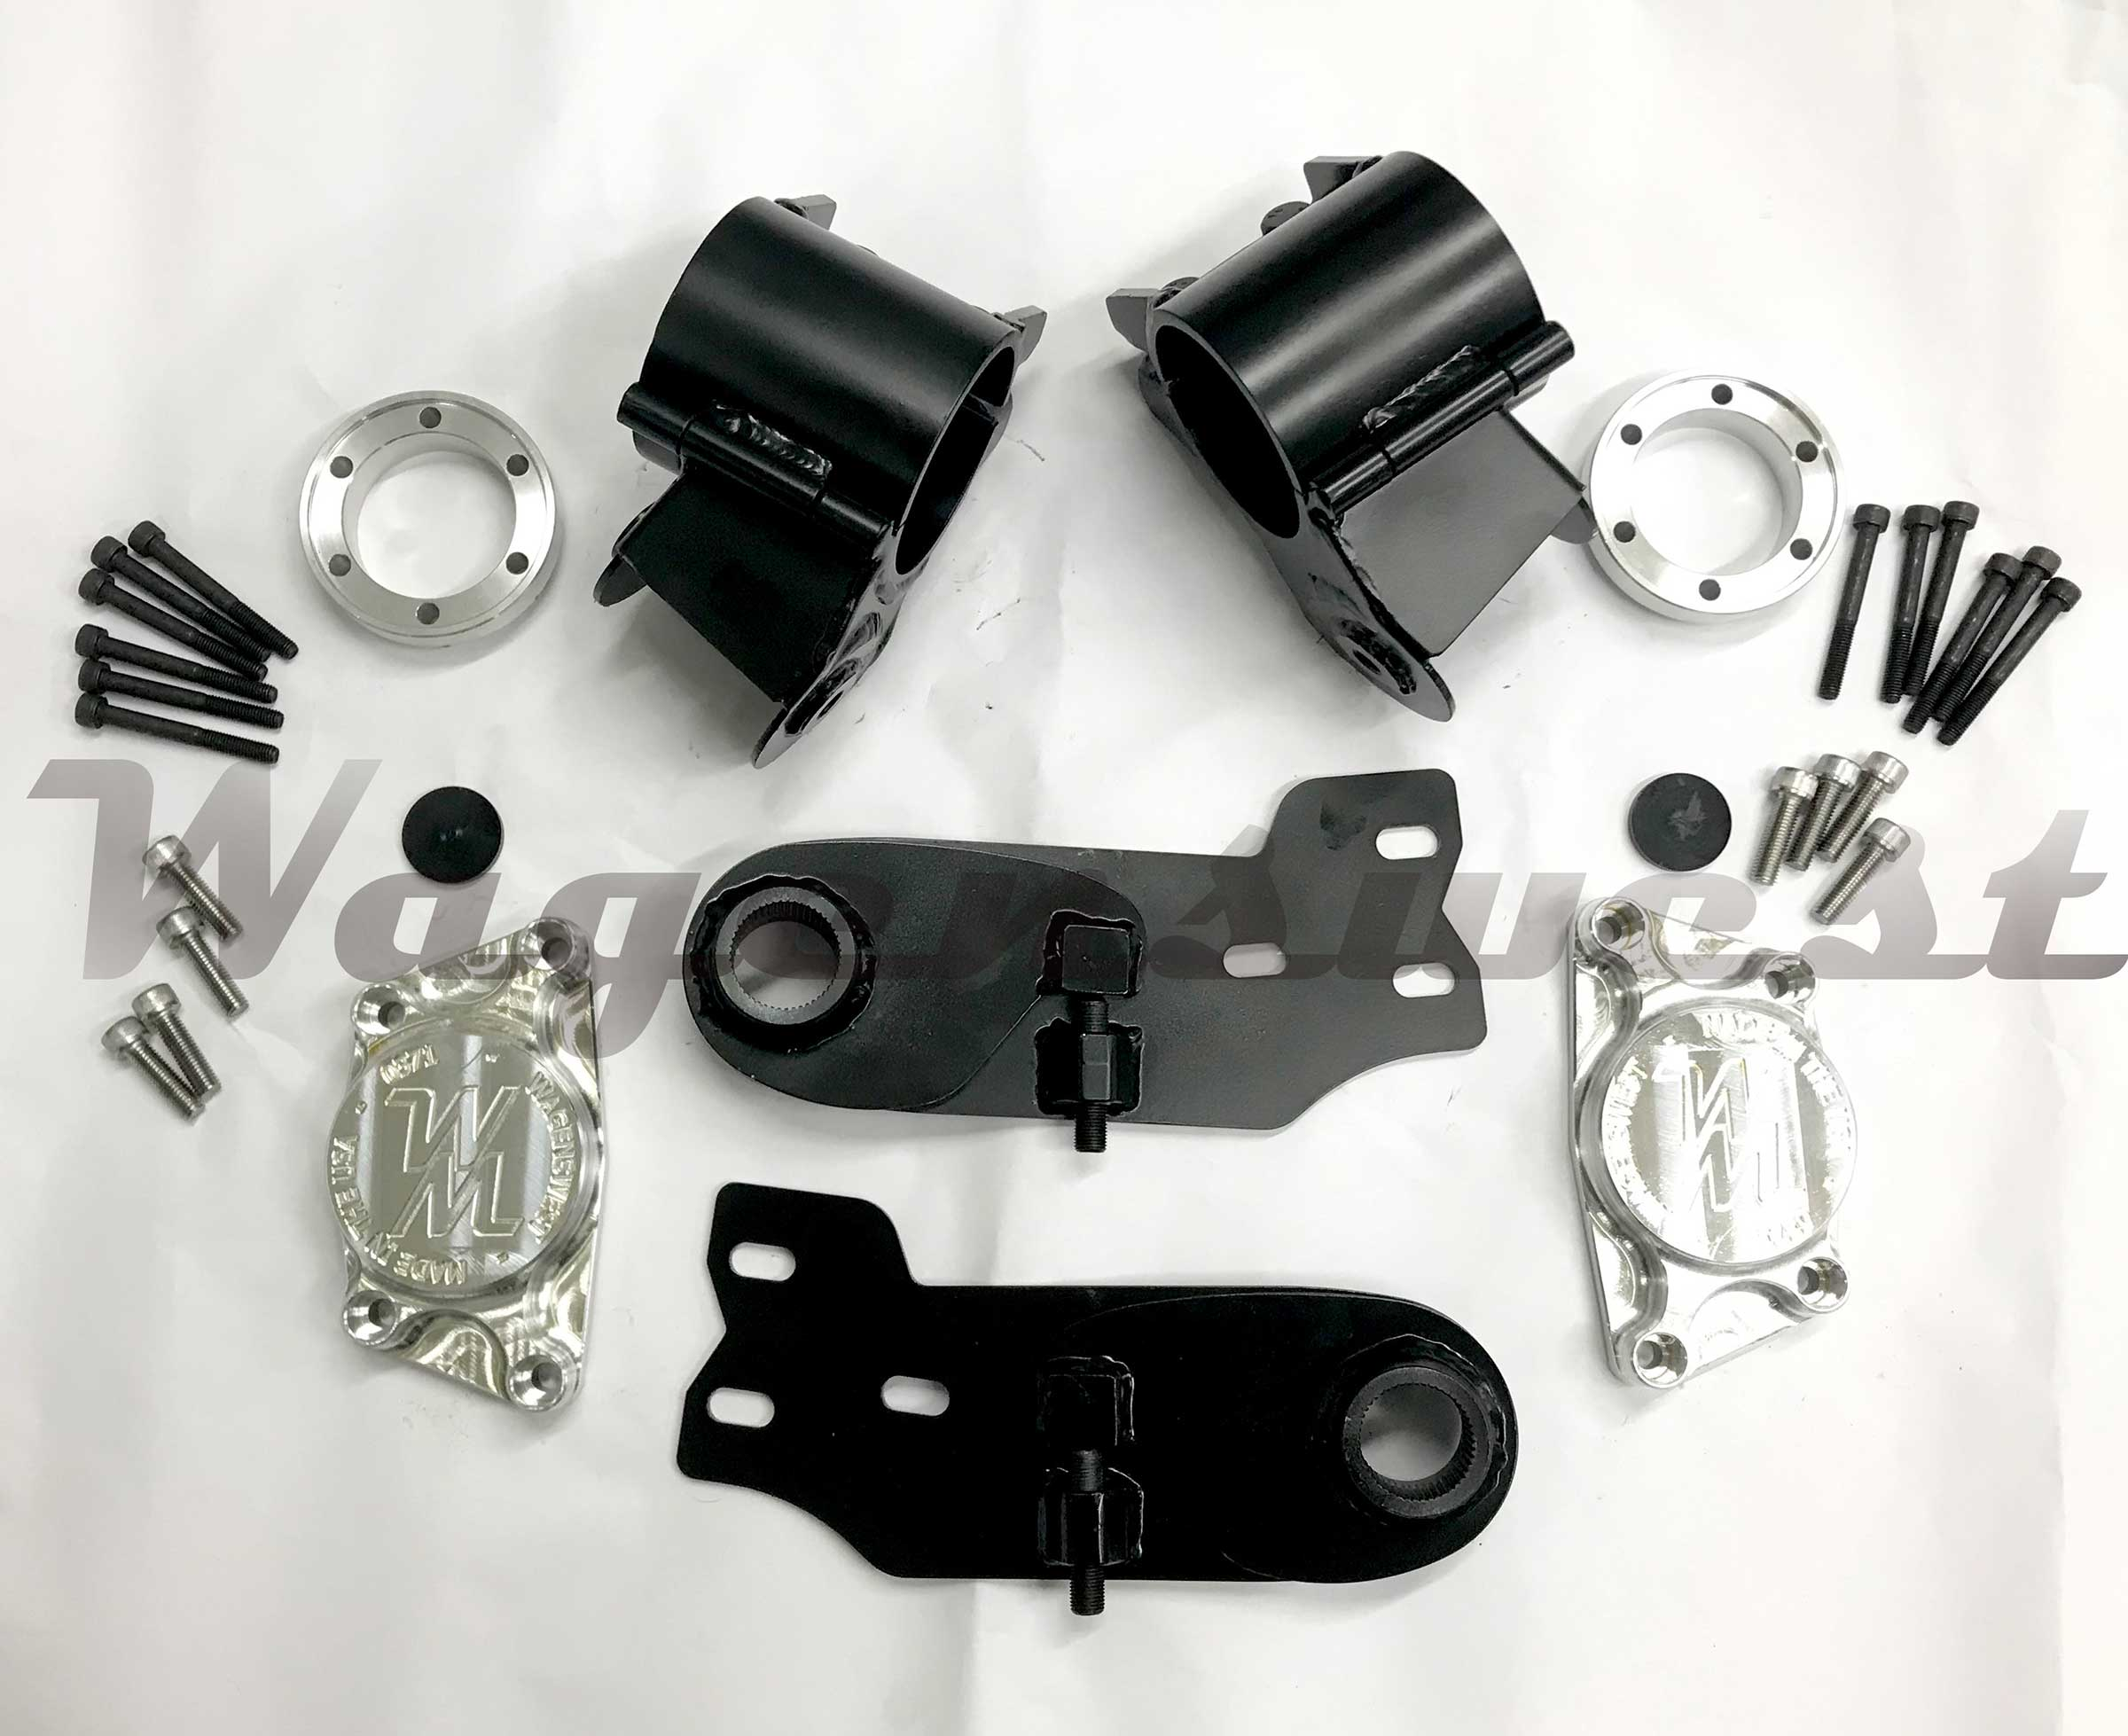 Adjustable Irs Kit By Wagenswest To Put Beetle Suspension In A Vw Bus